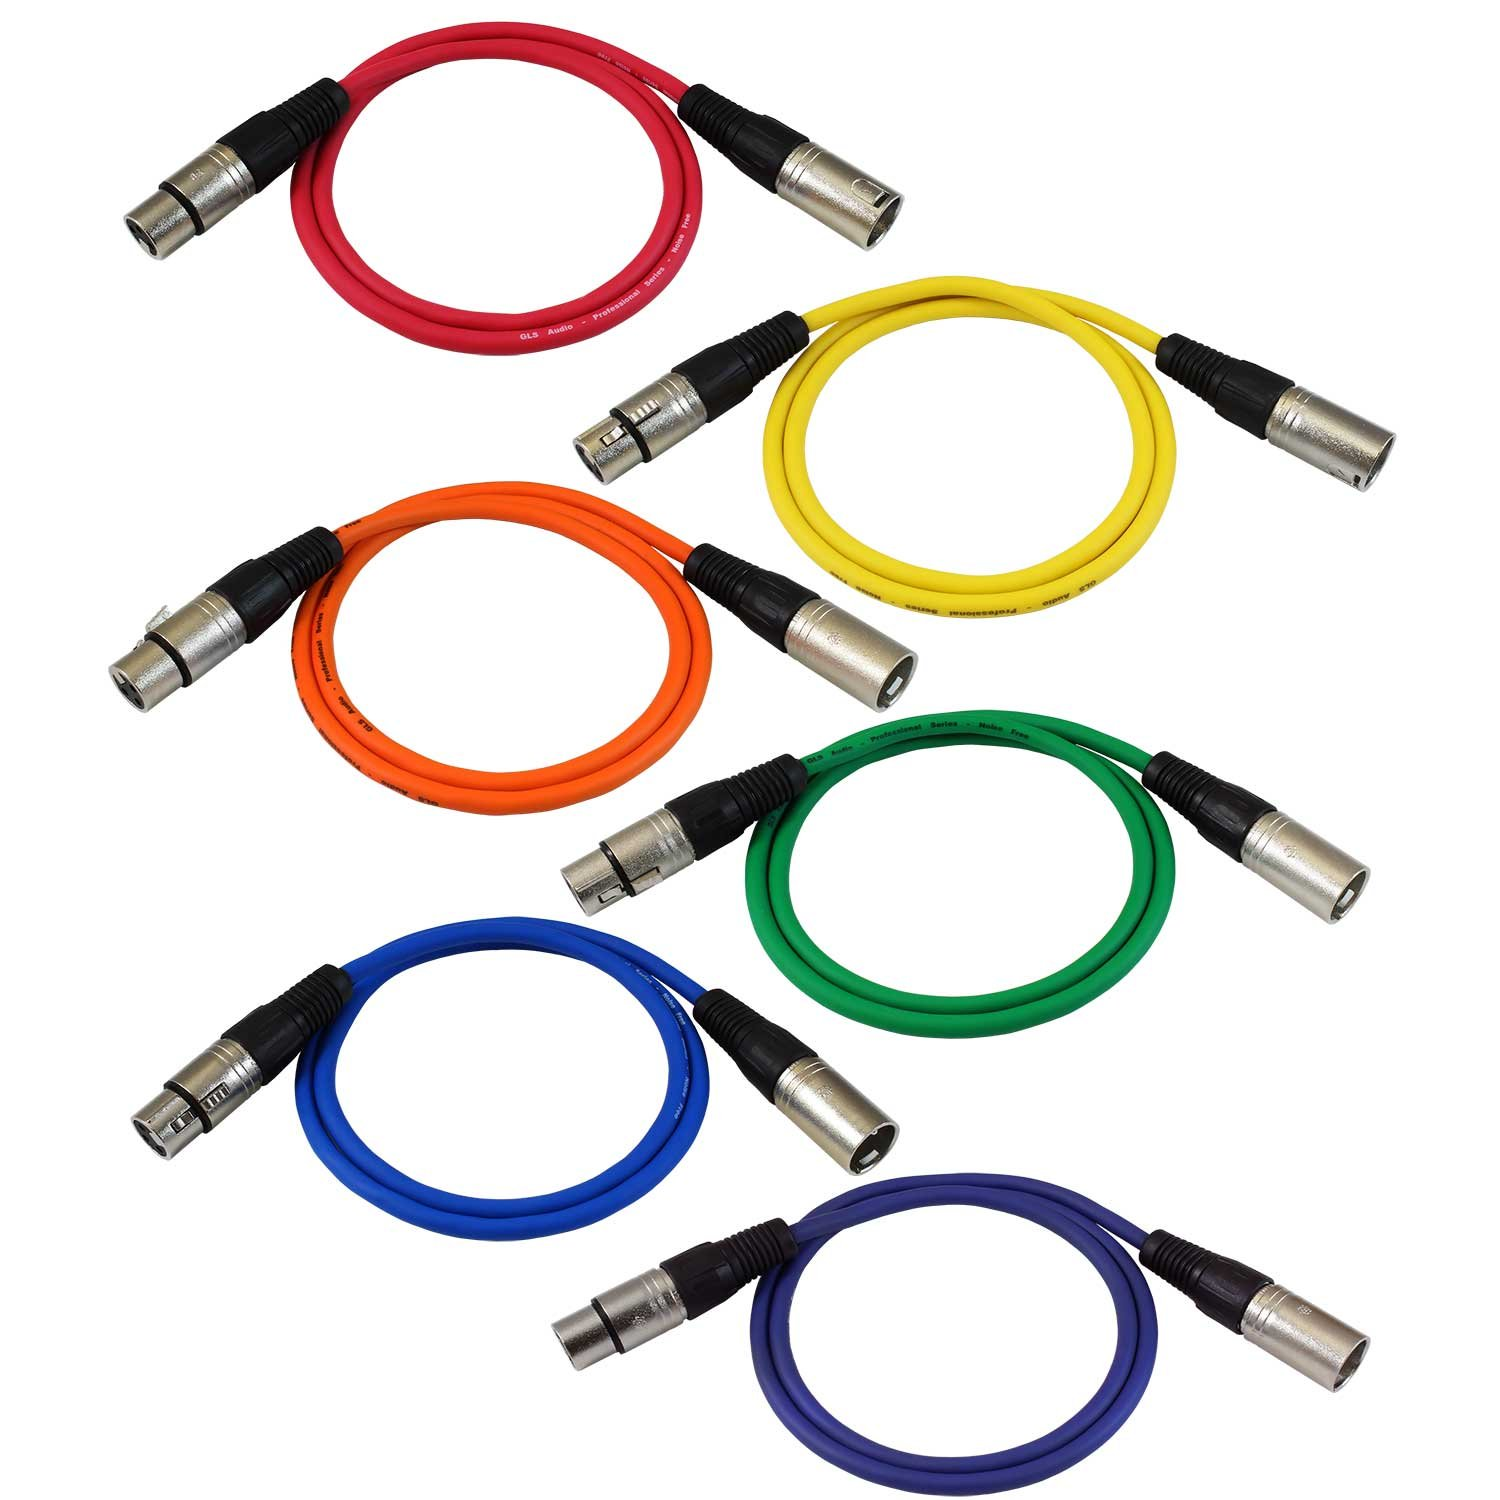 GLS Audio 3ft Patch Cable Cords - XLR Male To XLR Female Color Cables - 3' Balanced Snake Cord - 6 PACK